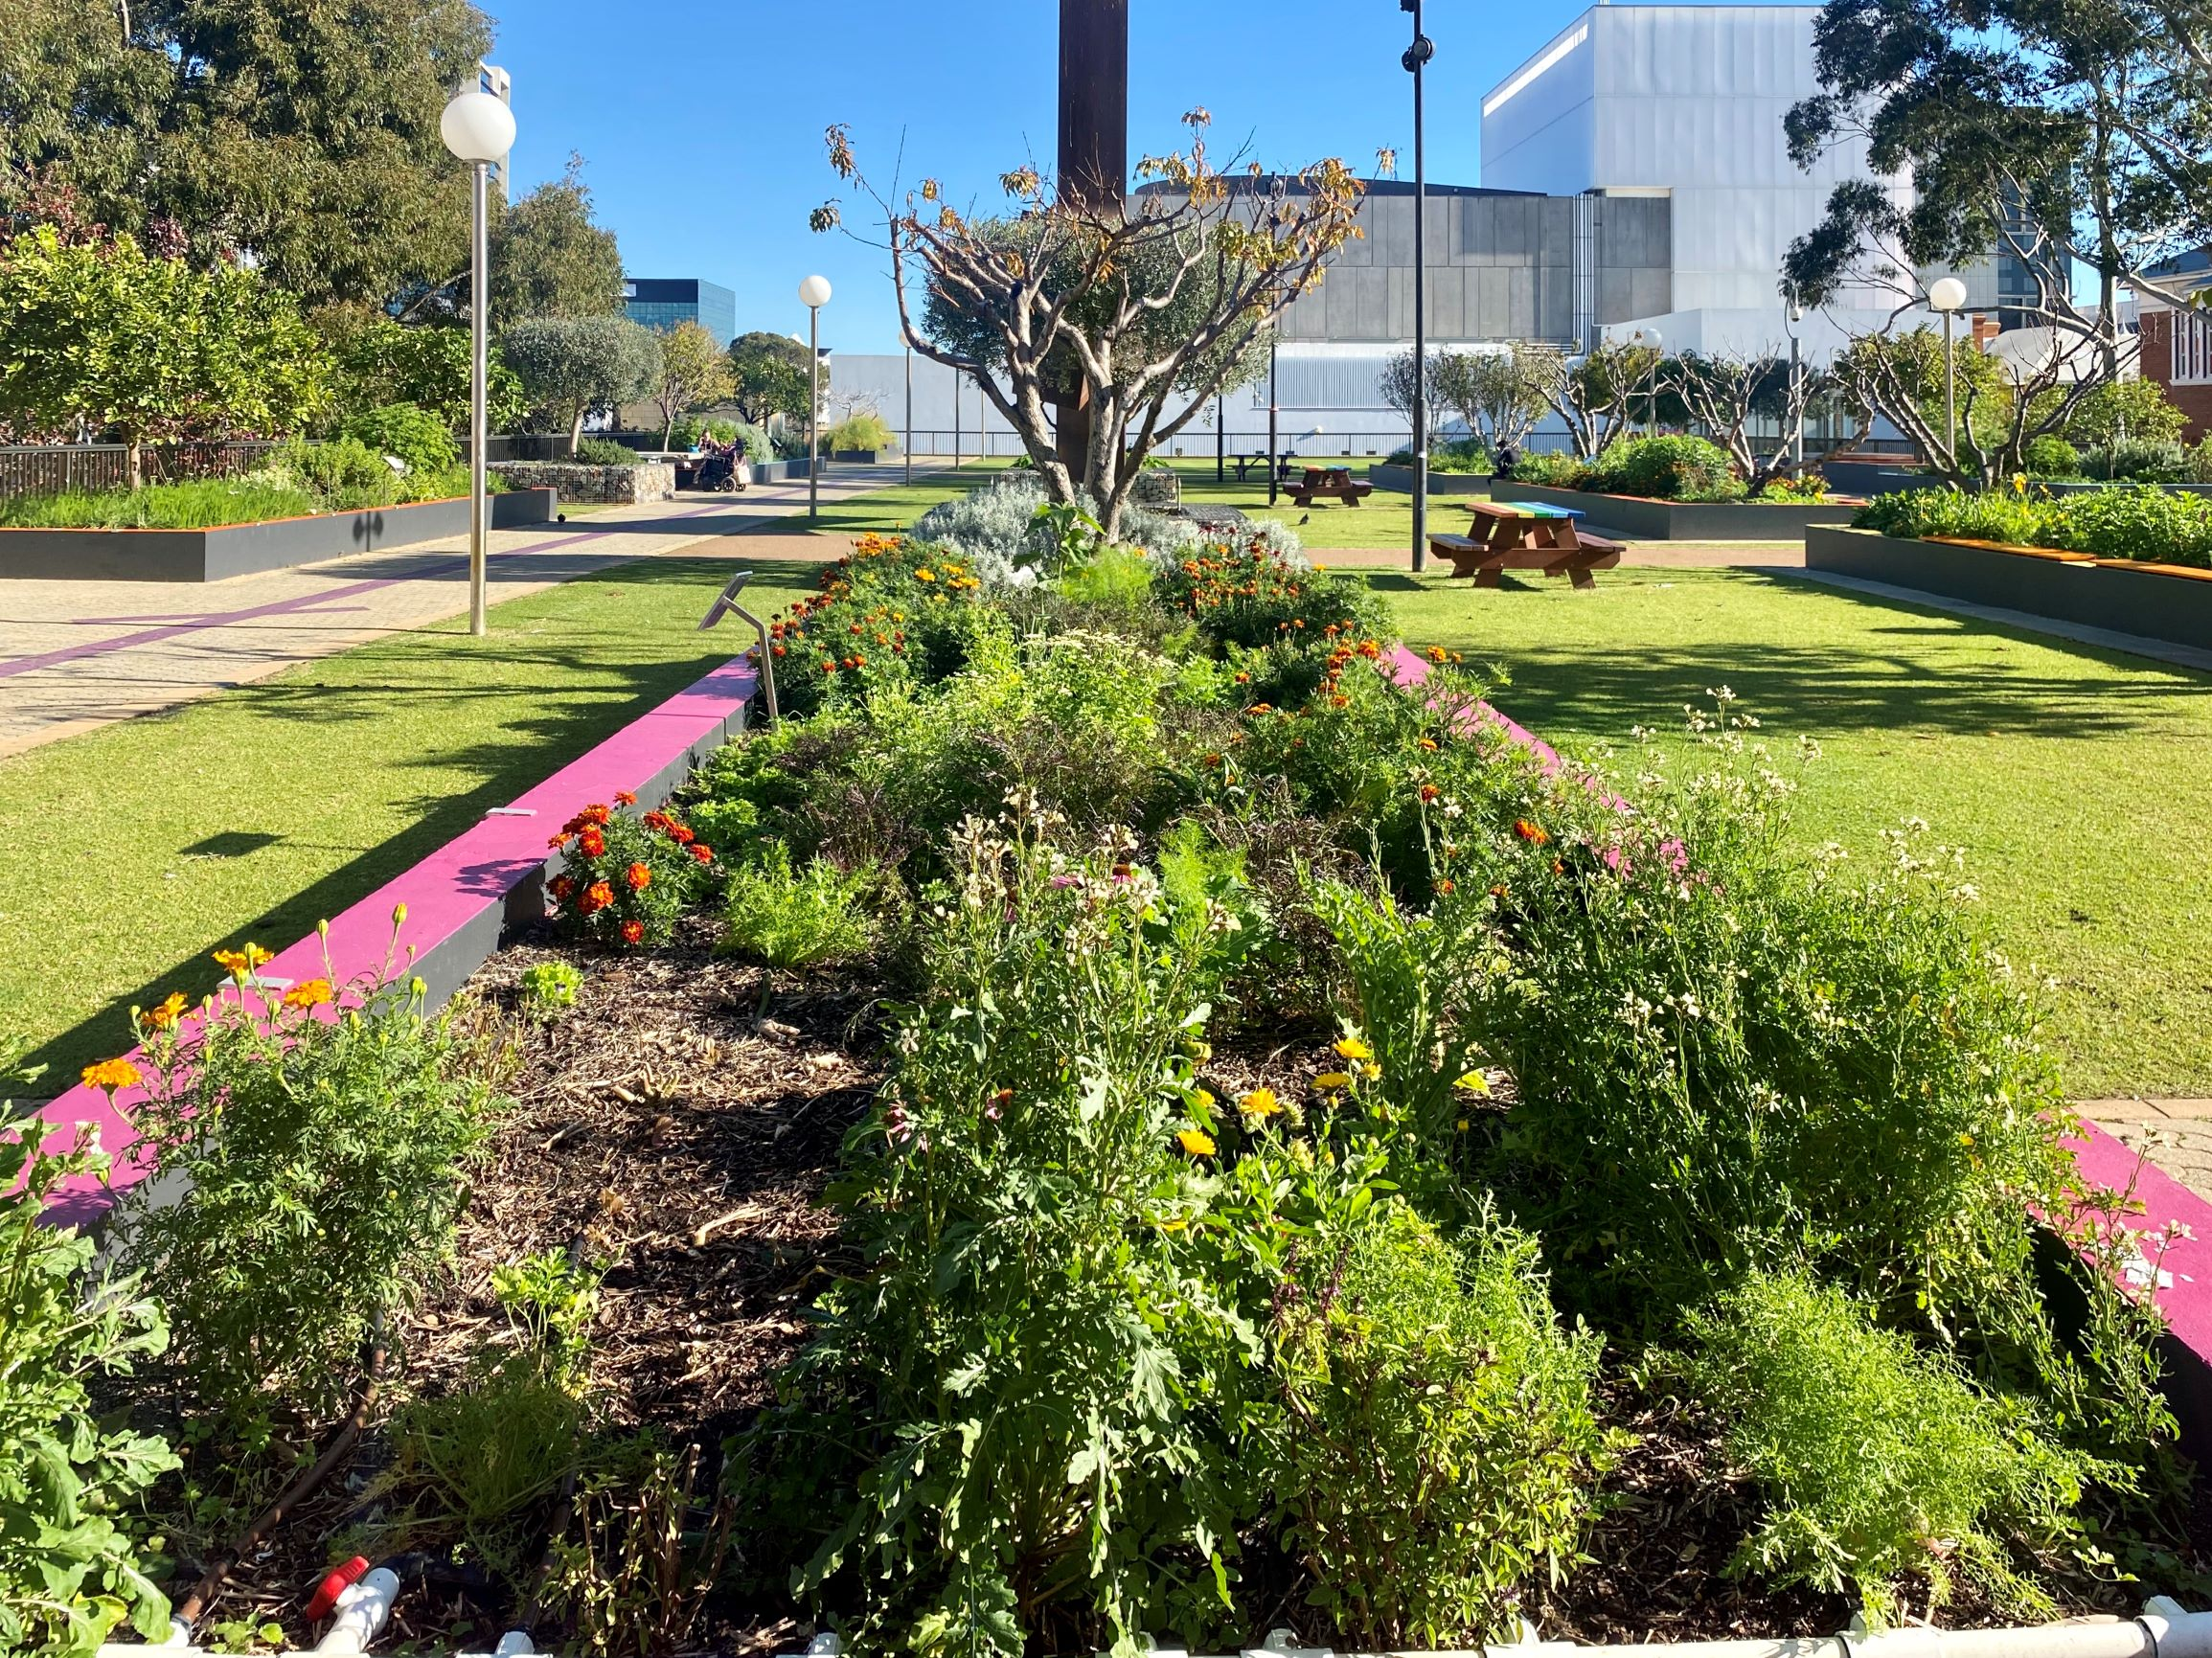 Perth Cultural Centre Subsurface Irrigation